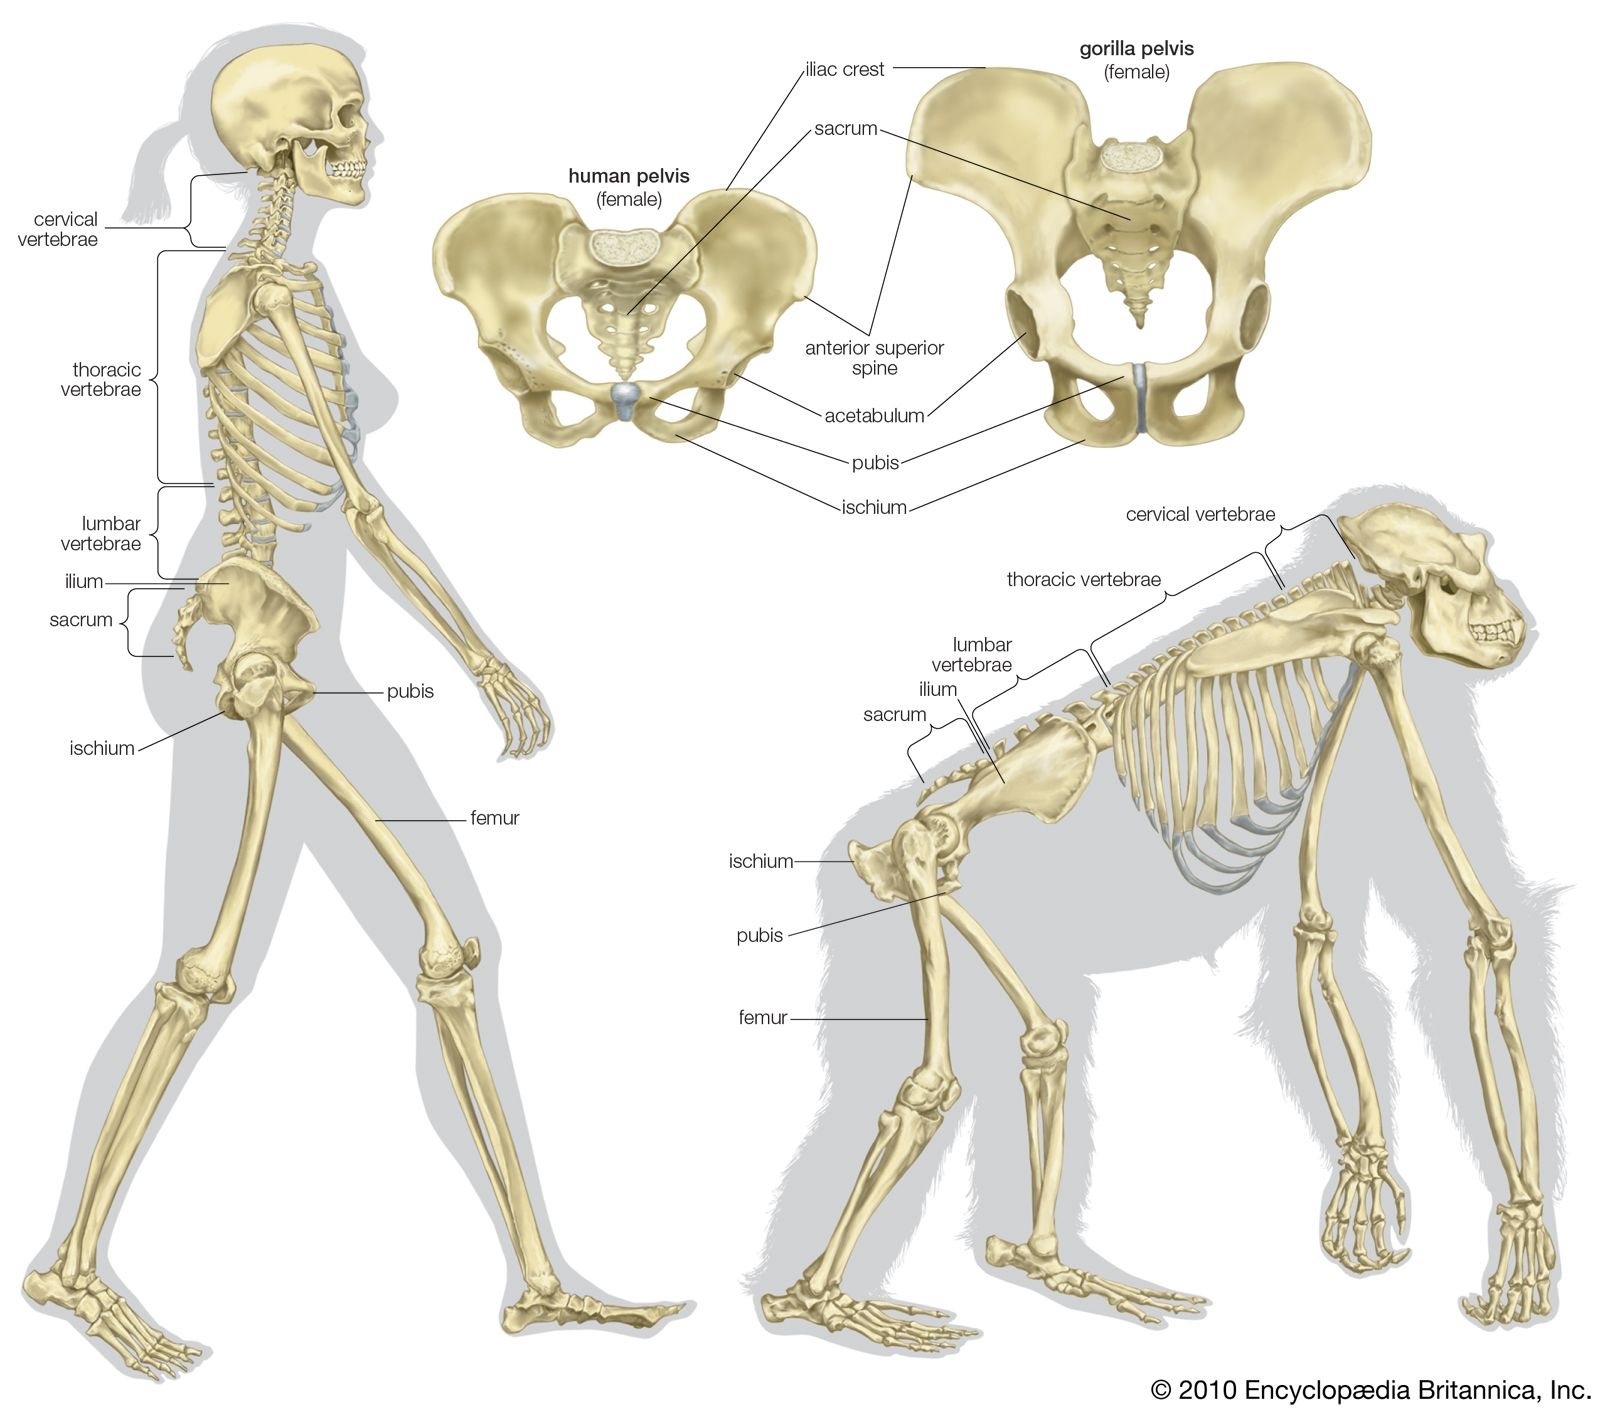 The skeletal structure of a human being (left) and of a gorilla ...